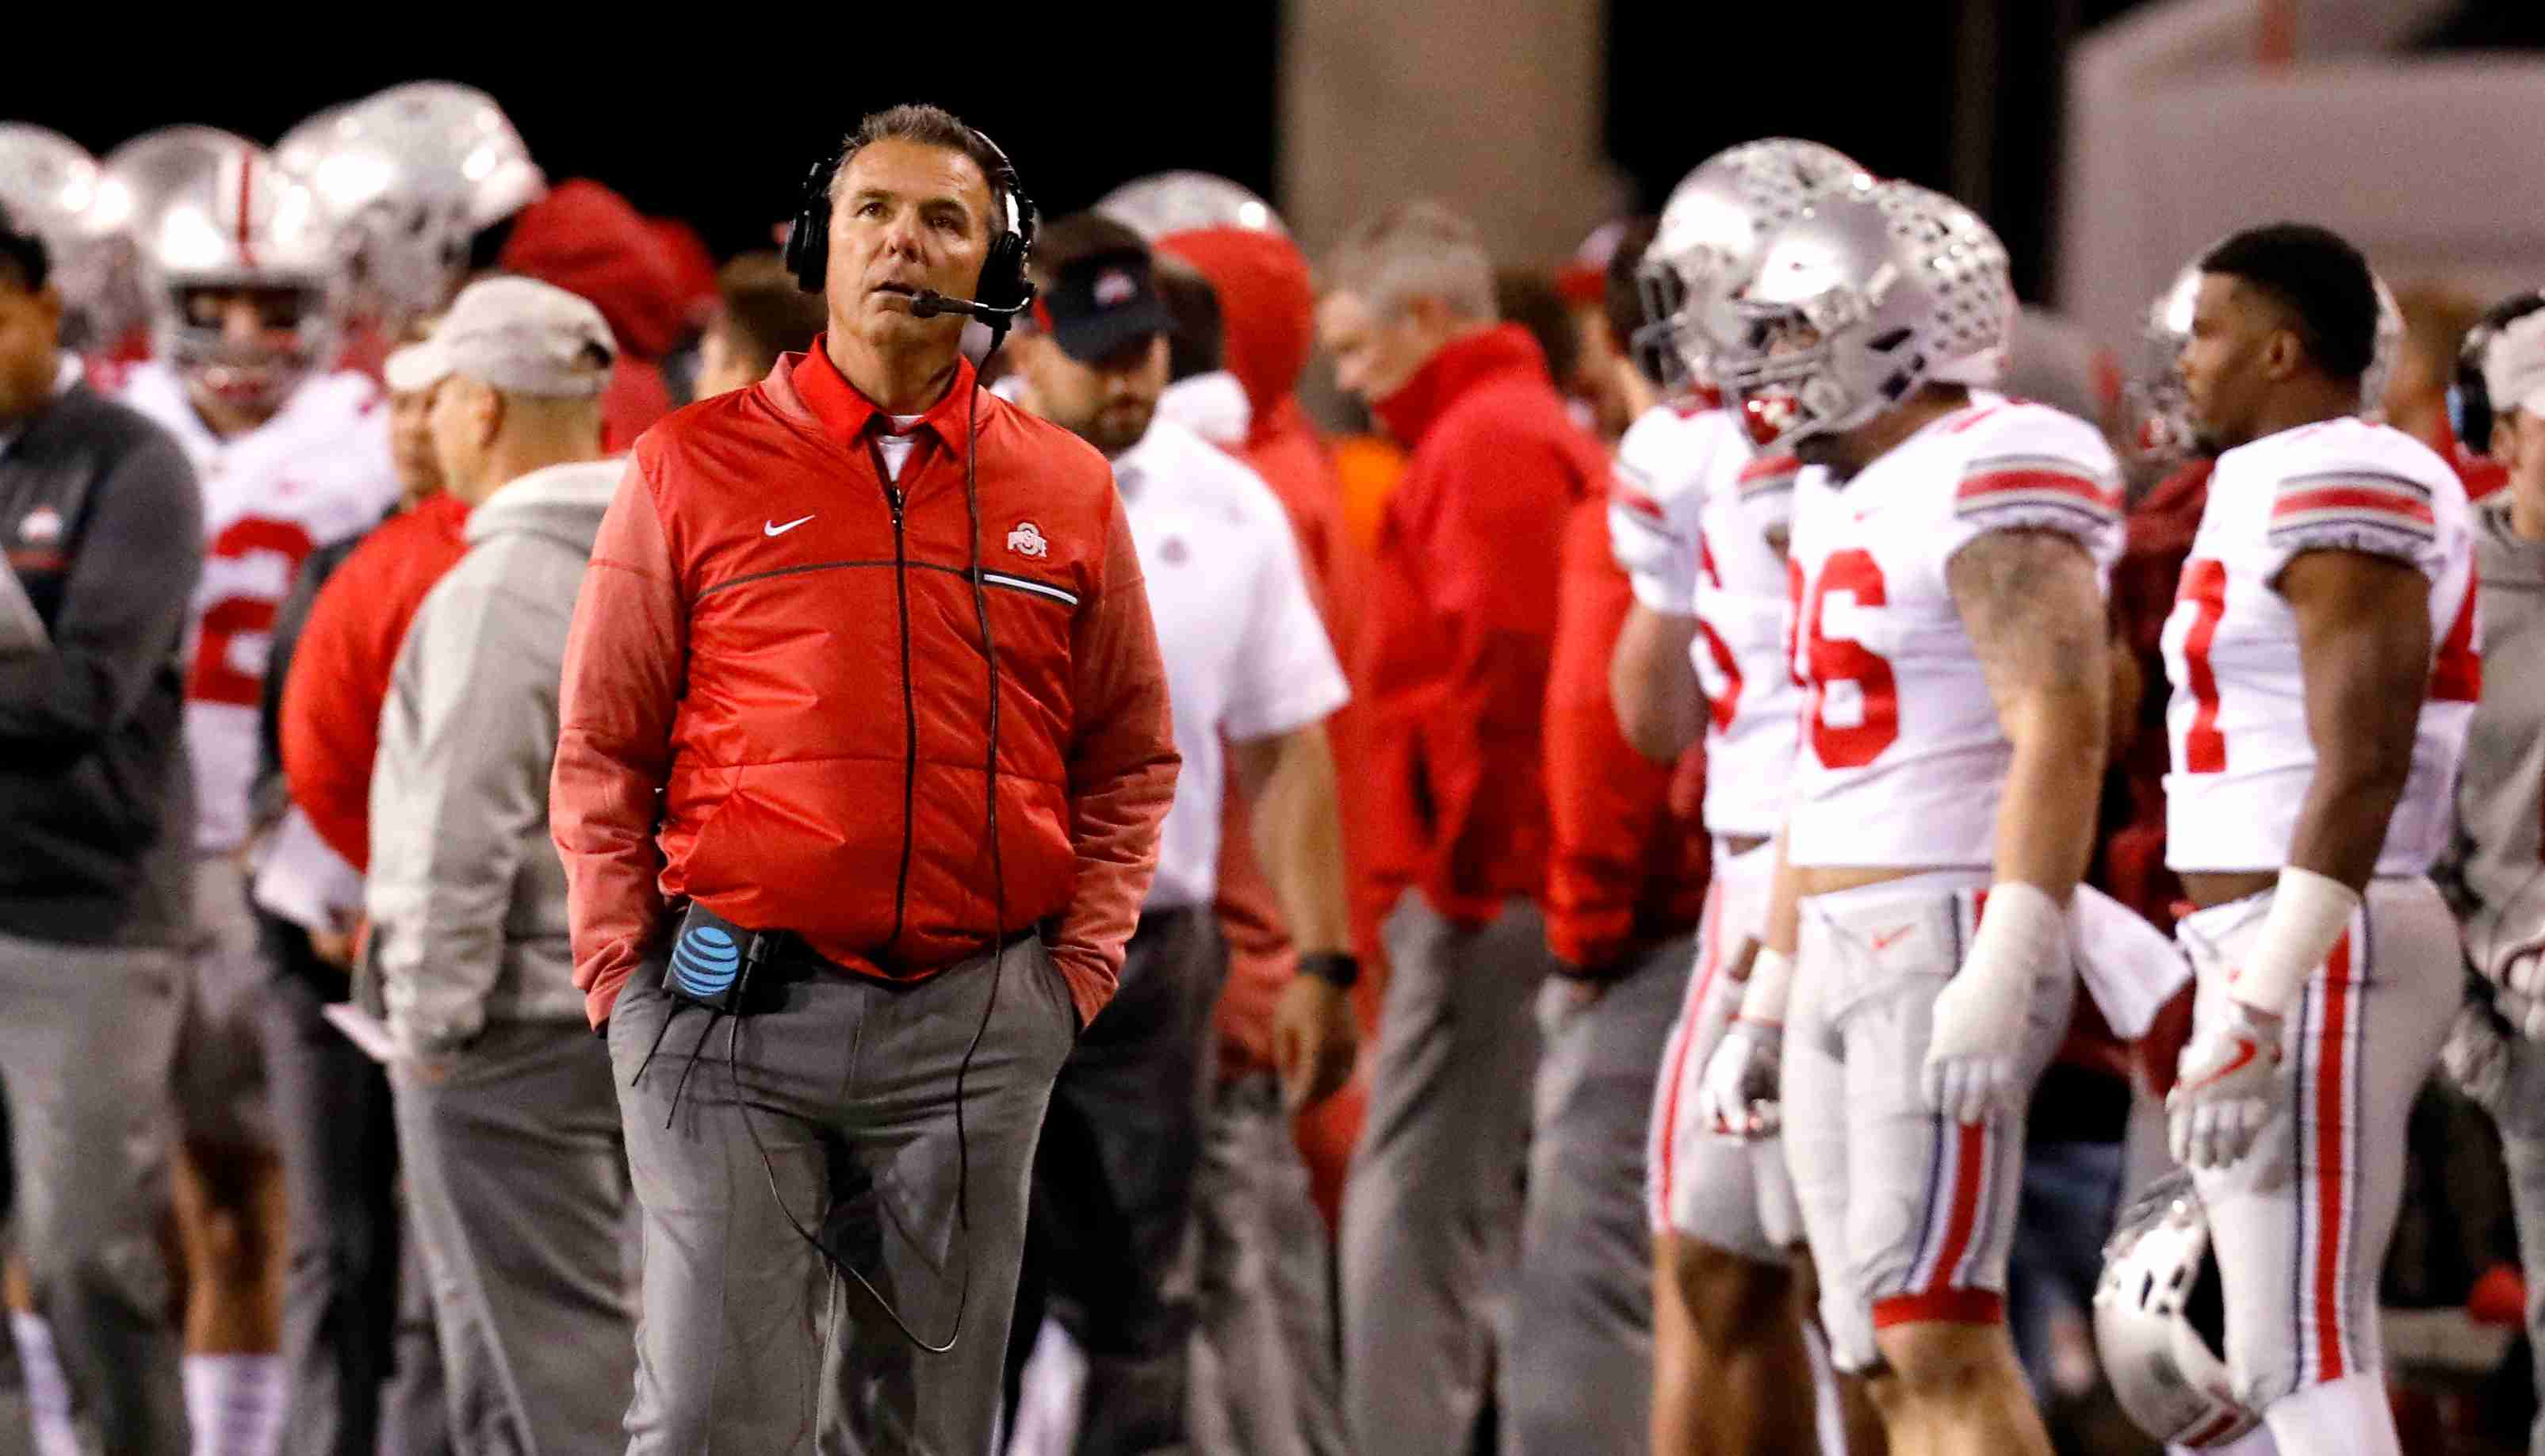 Oct 14, 2017; Lincoln, NE, USA; Ohio State Buckeyes head coach Urban Meyer looks at the scoreboard during the game against the Nebraska Cornhuskers in the second half at Memorial Stadium. Ohio State won 56-14. Mandatory Credit: Bruce Thorson-USA TODAY Sports - 10347589